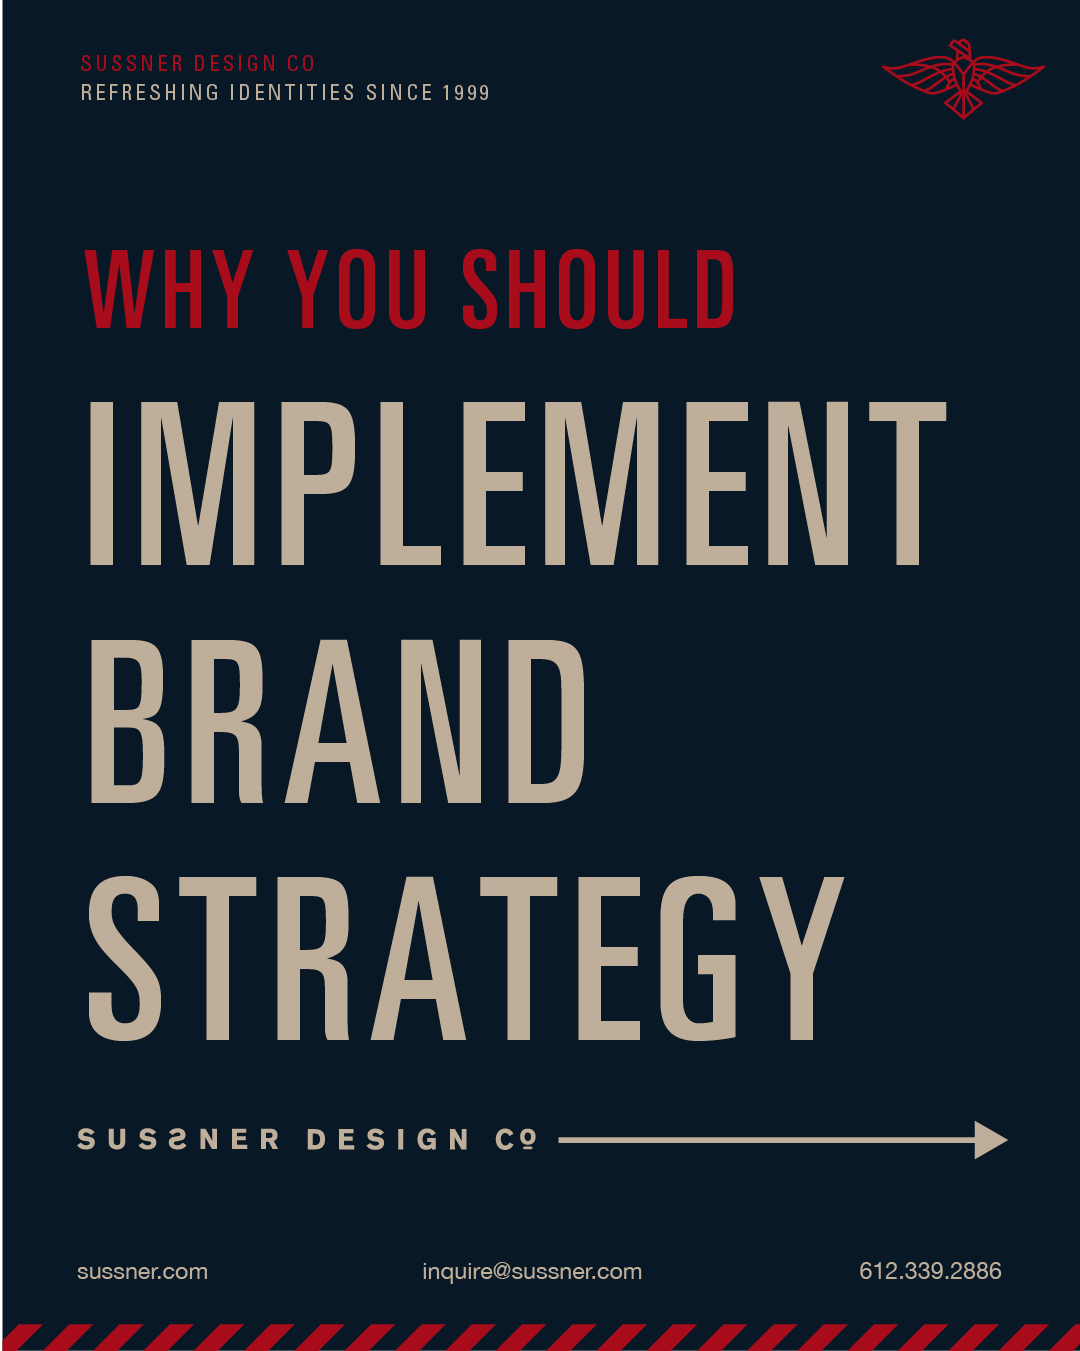 Why You Should Implement Brand Strategy